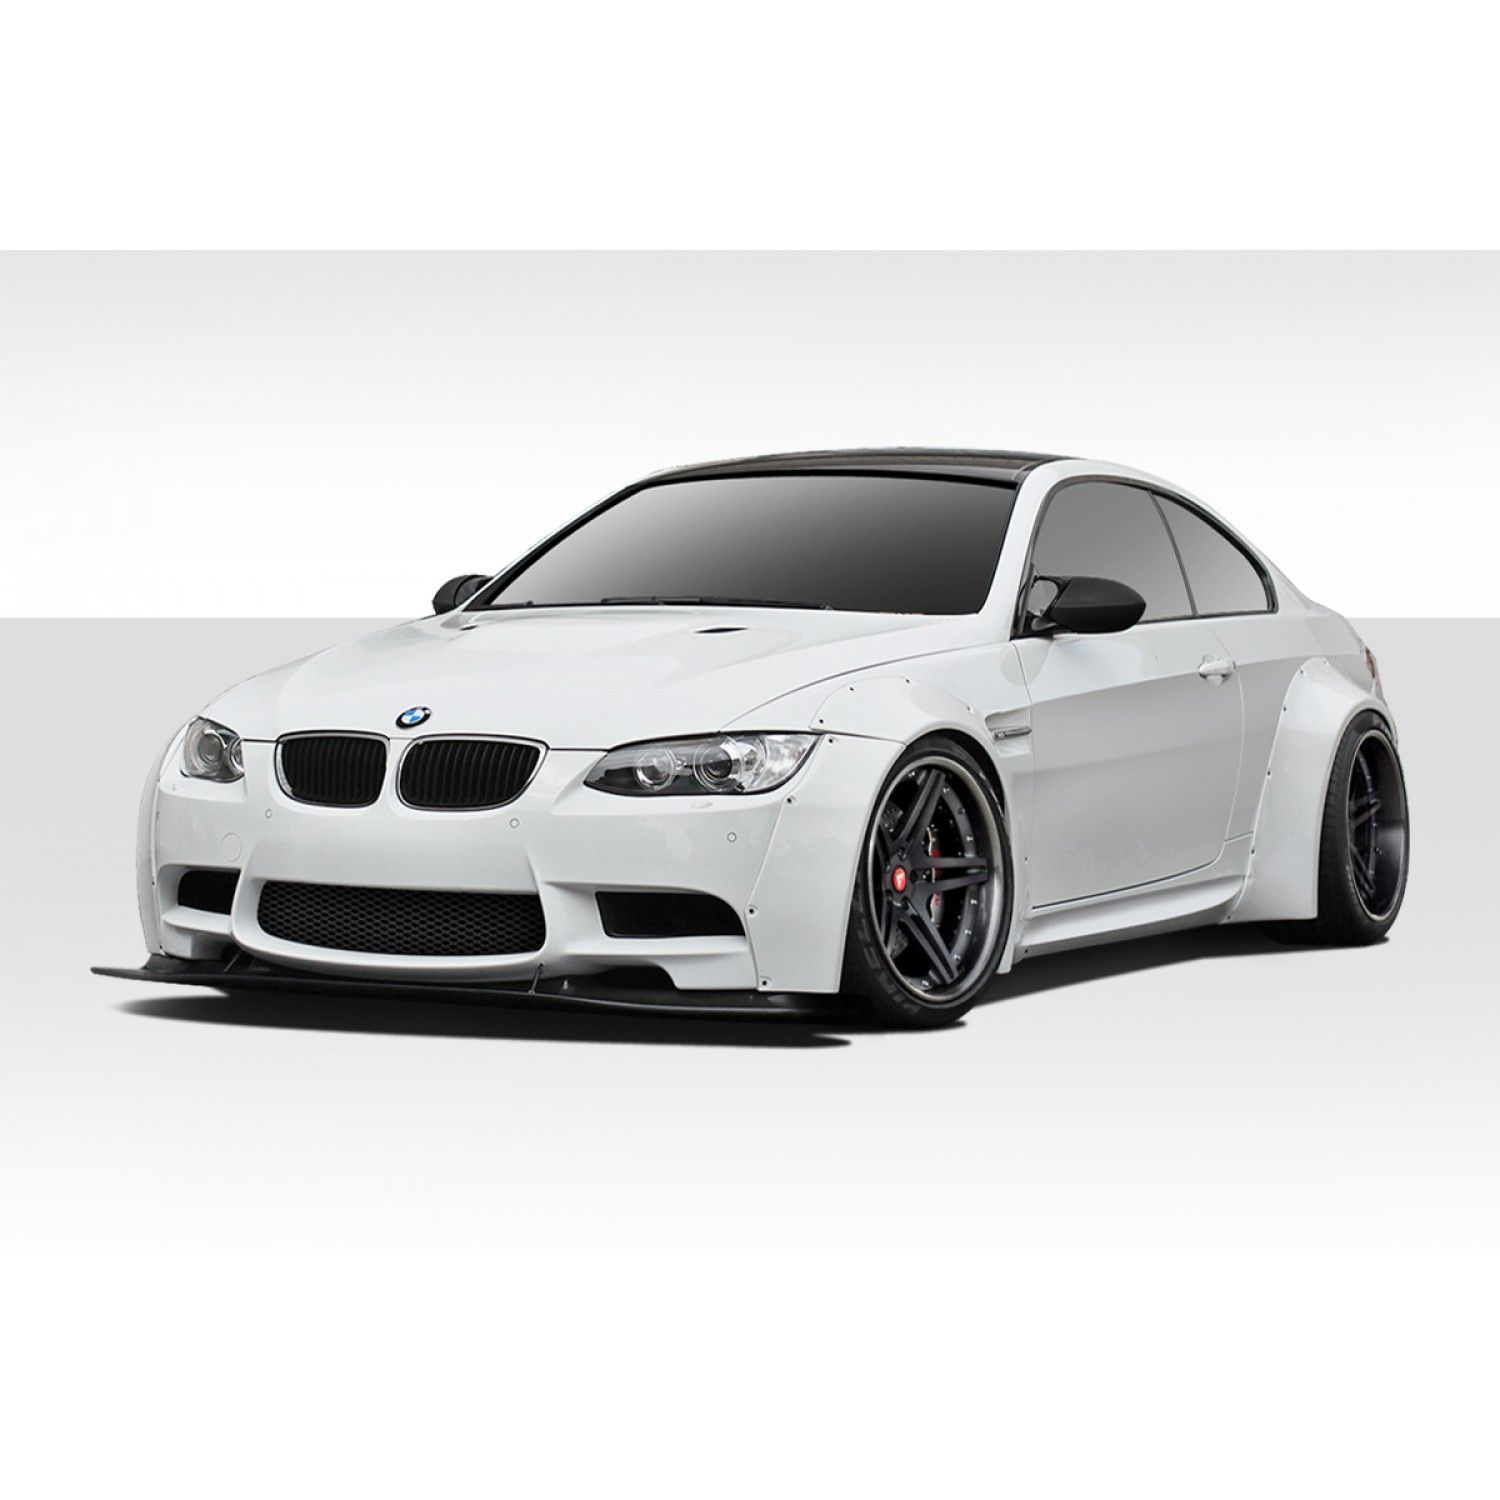 2007 2013 Bmw M3 E92 E93 Duraflex Circuit Wide Body Kit 8 Piece